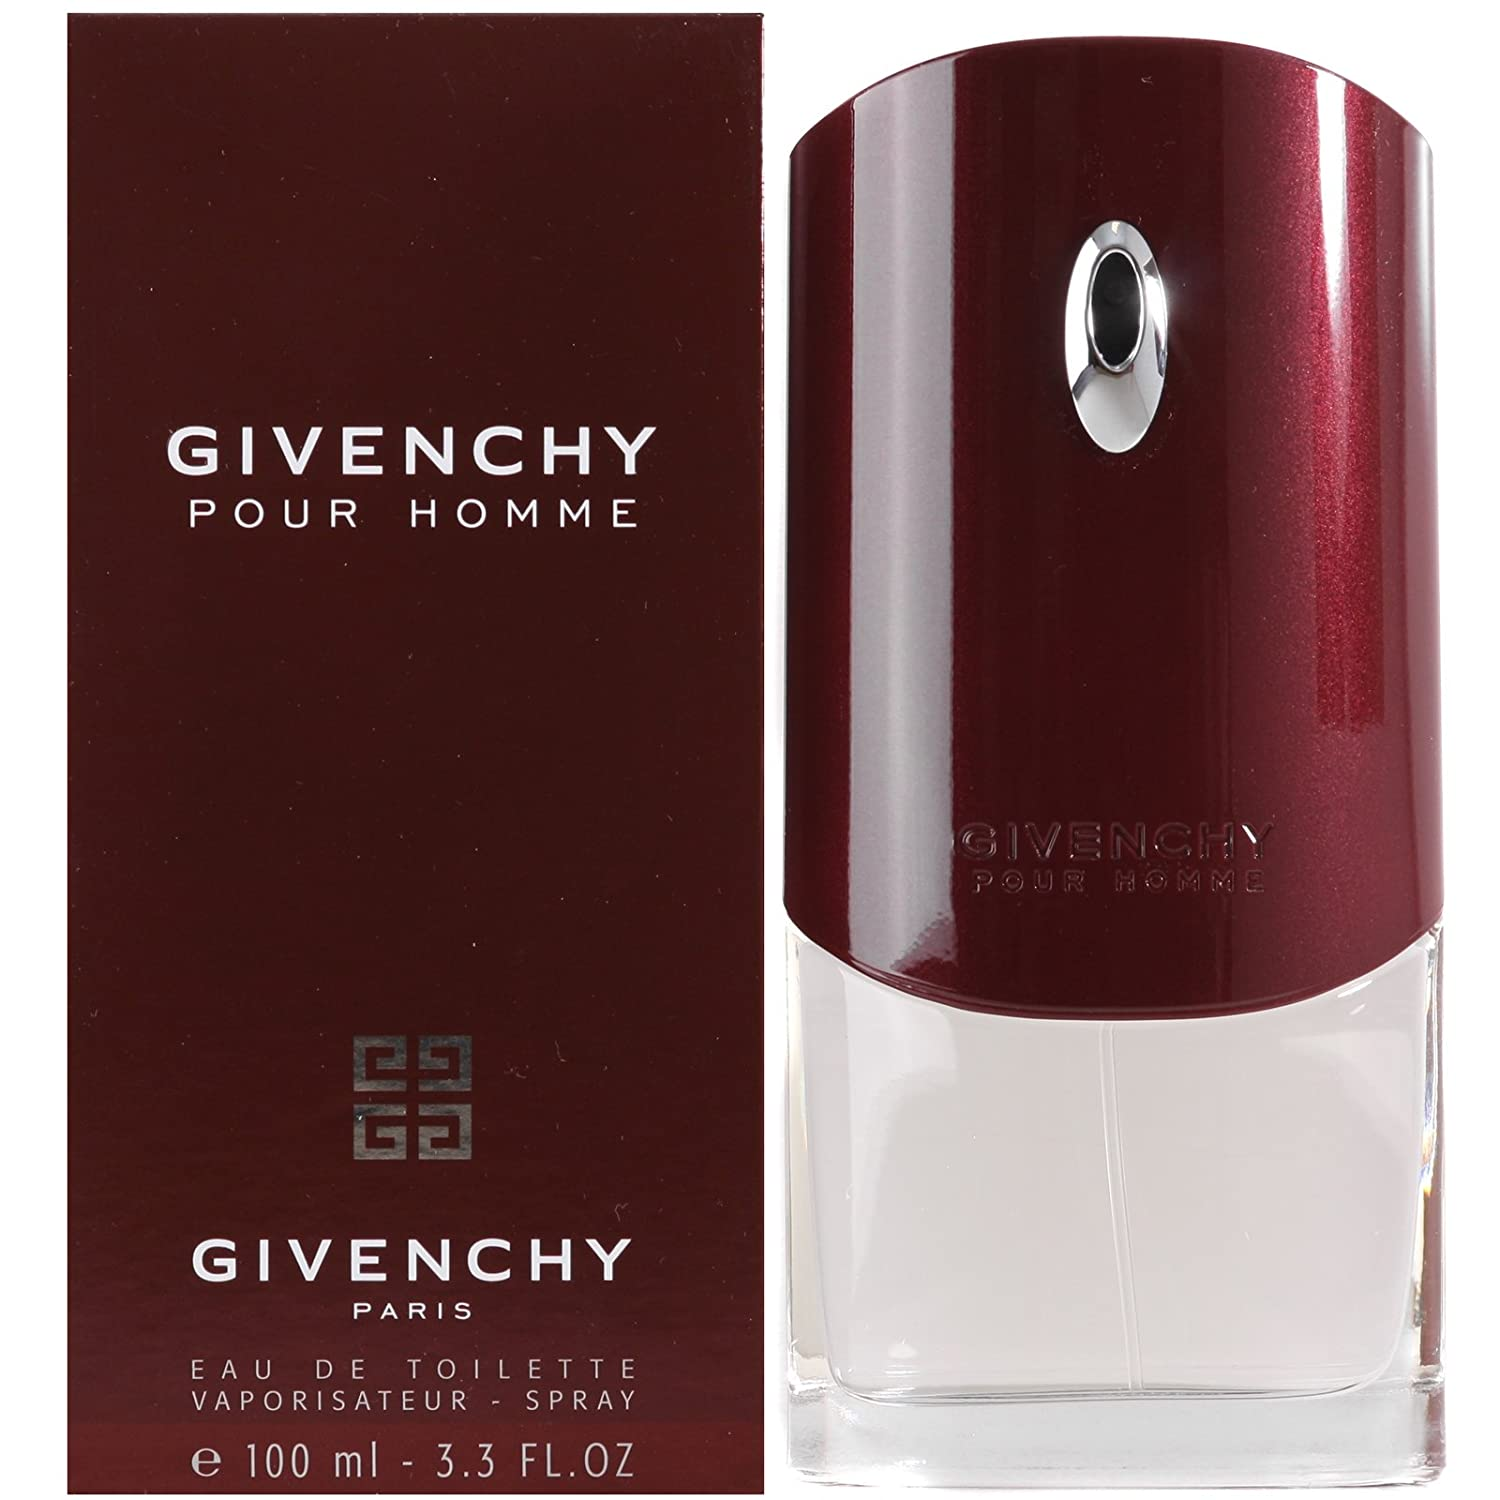 Givenchy Eau Toilette Homme For Him De Ml 100 0O8nwkP